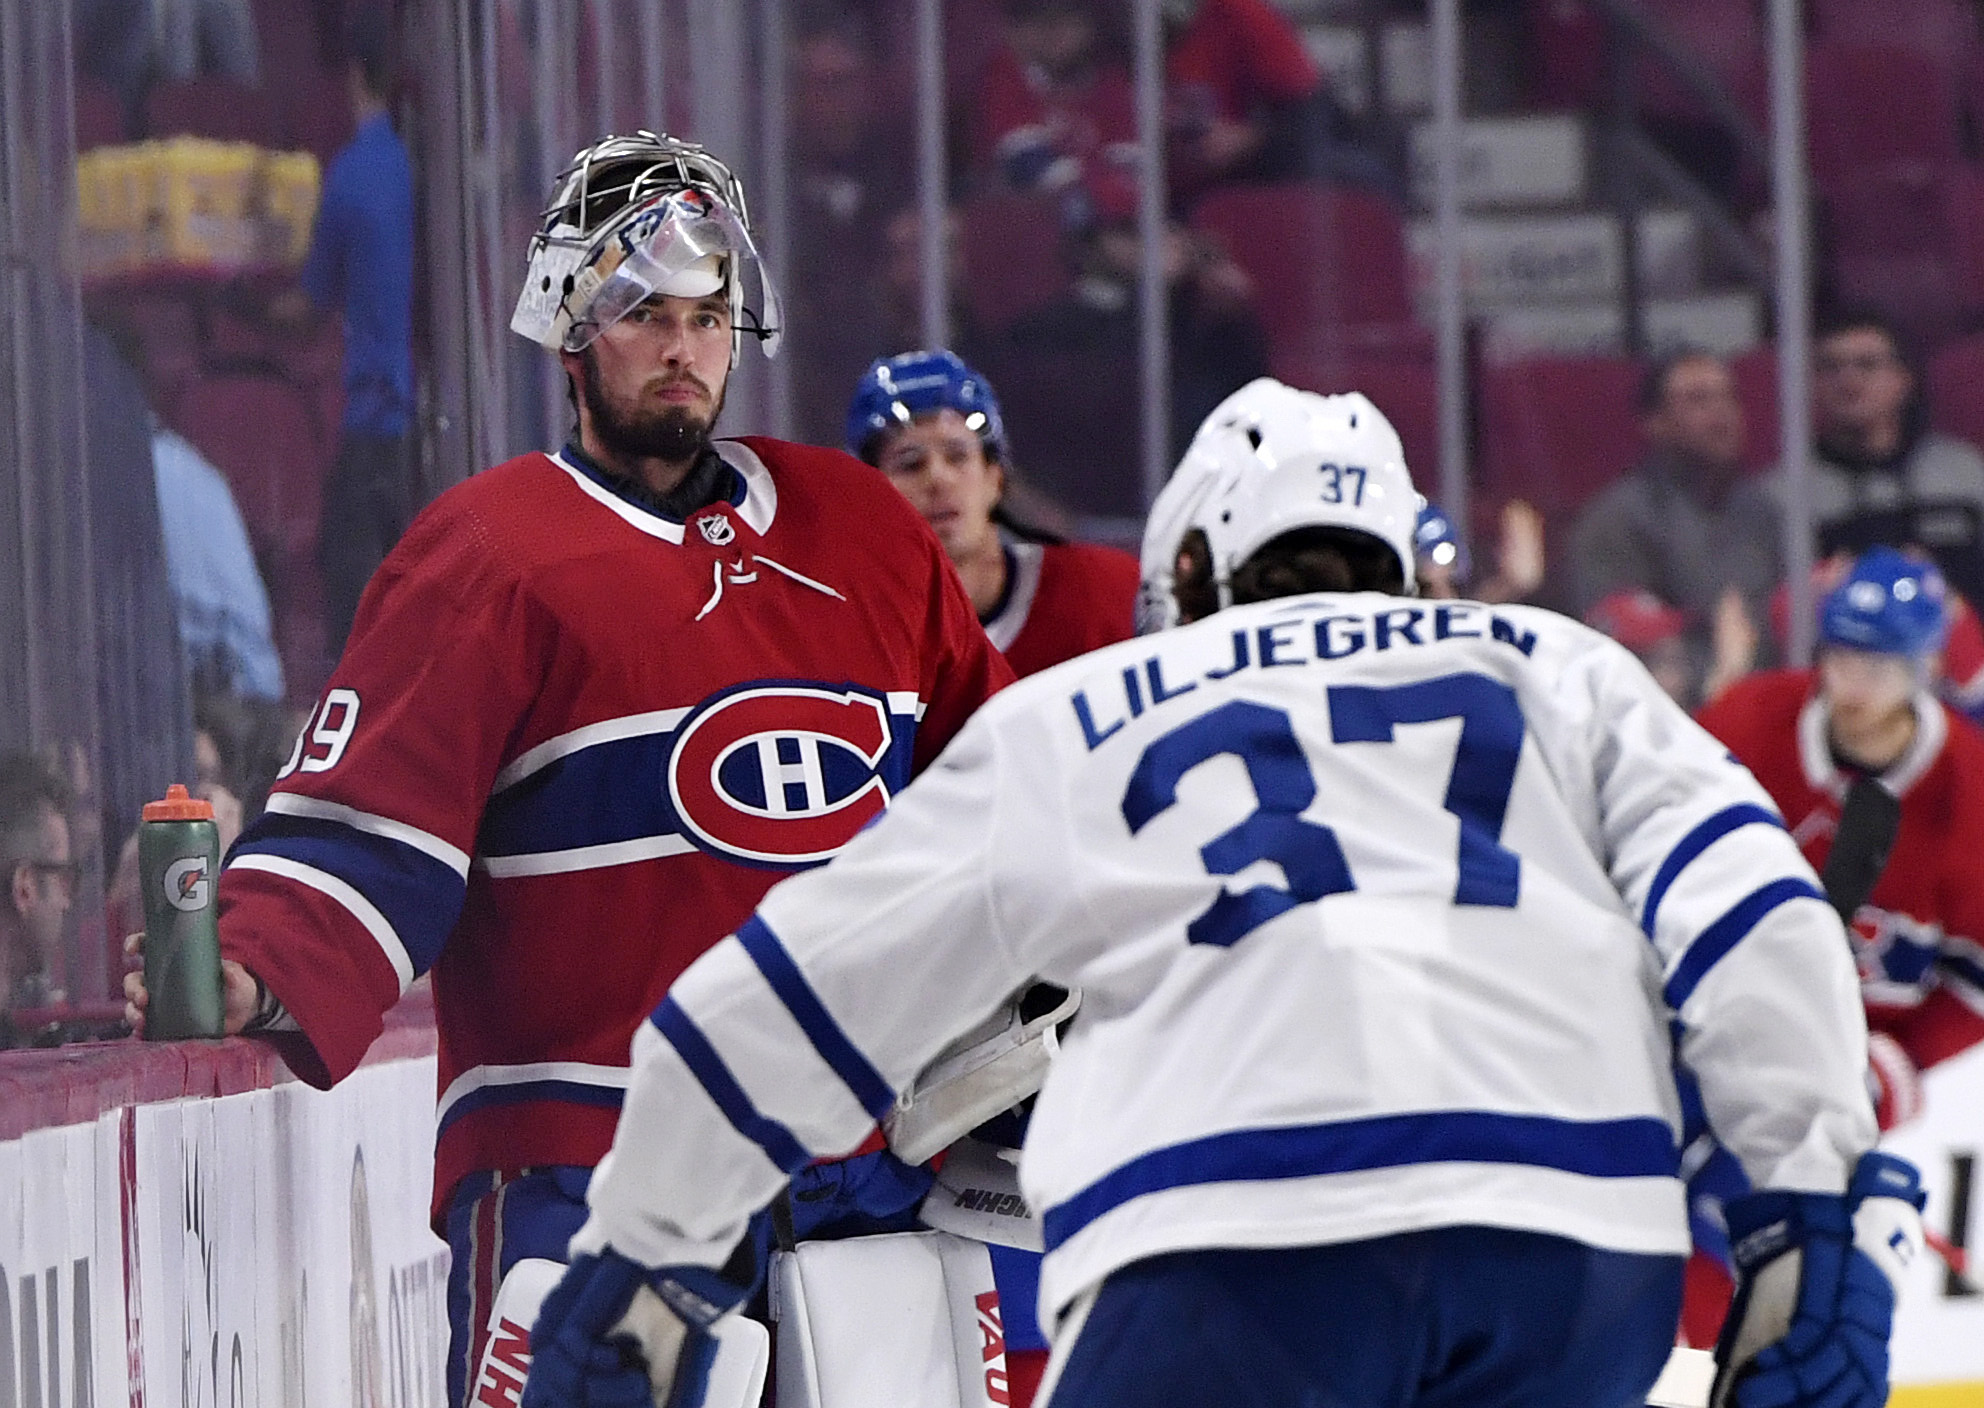 NHL: Preseason-Toronto Maple Leafs at Montreal Canadiens